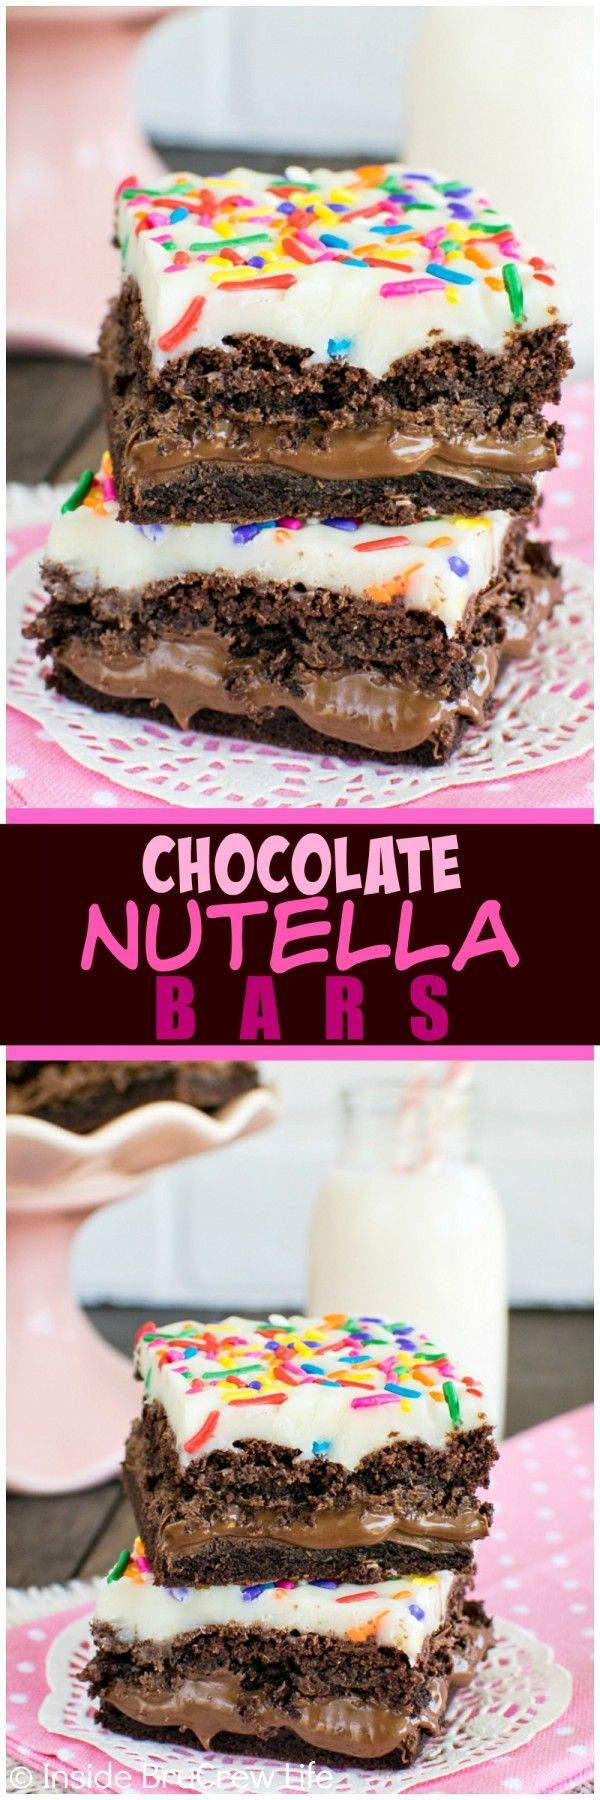 Chocolate Nutella Bars - the creamy chocolate center and white chocolate topping give these easy bars a fun twist!  Great dessert recipe!